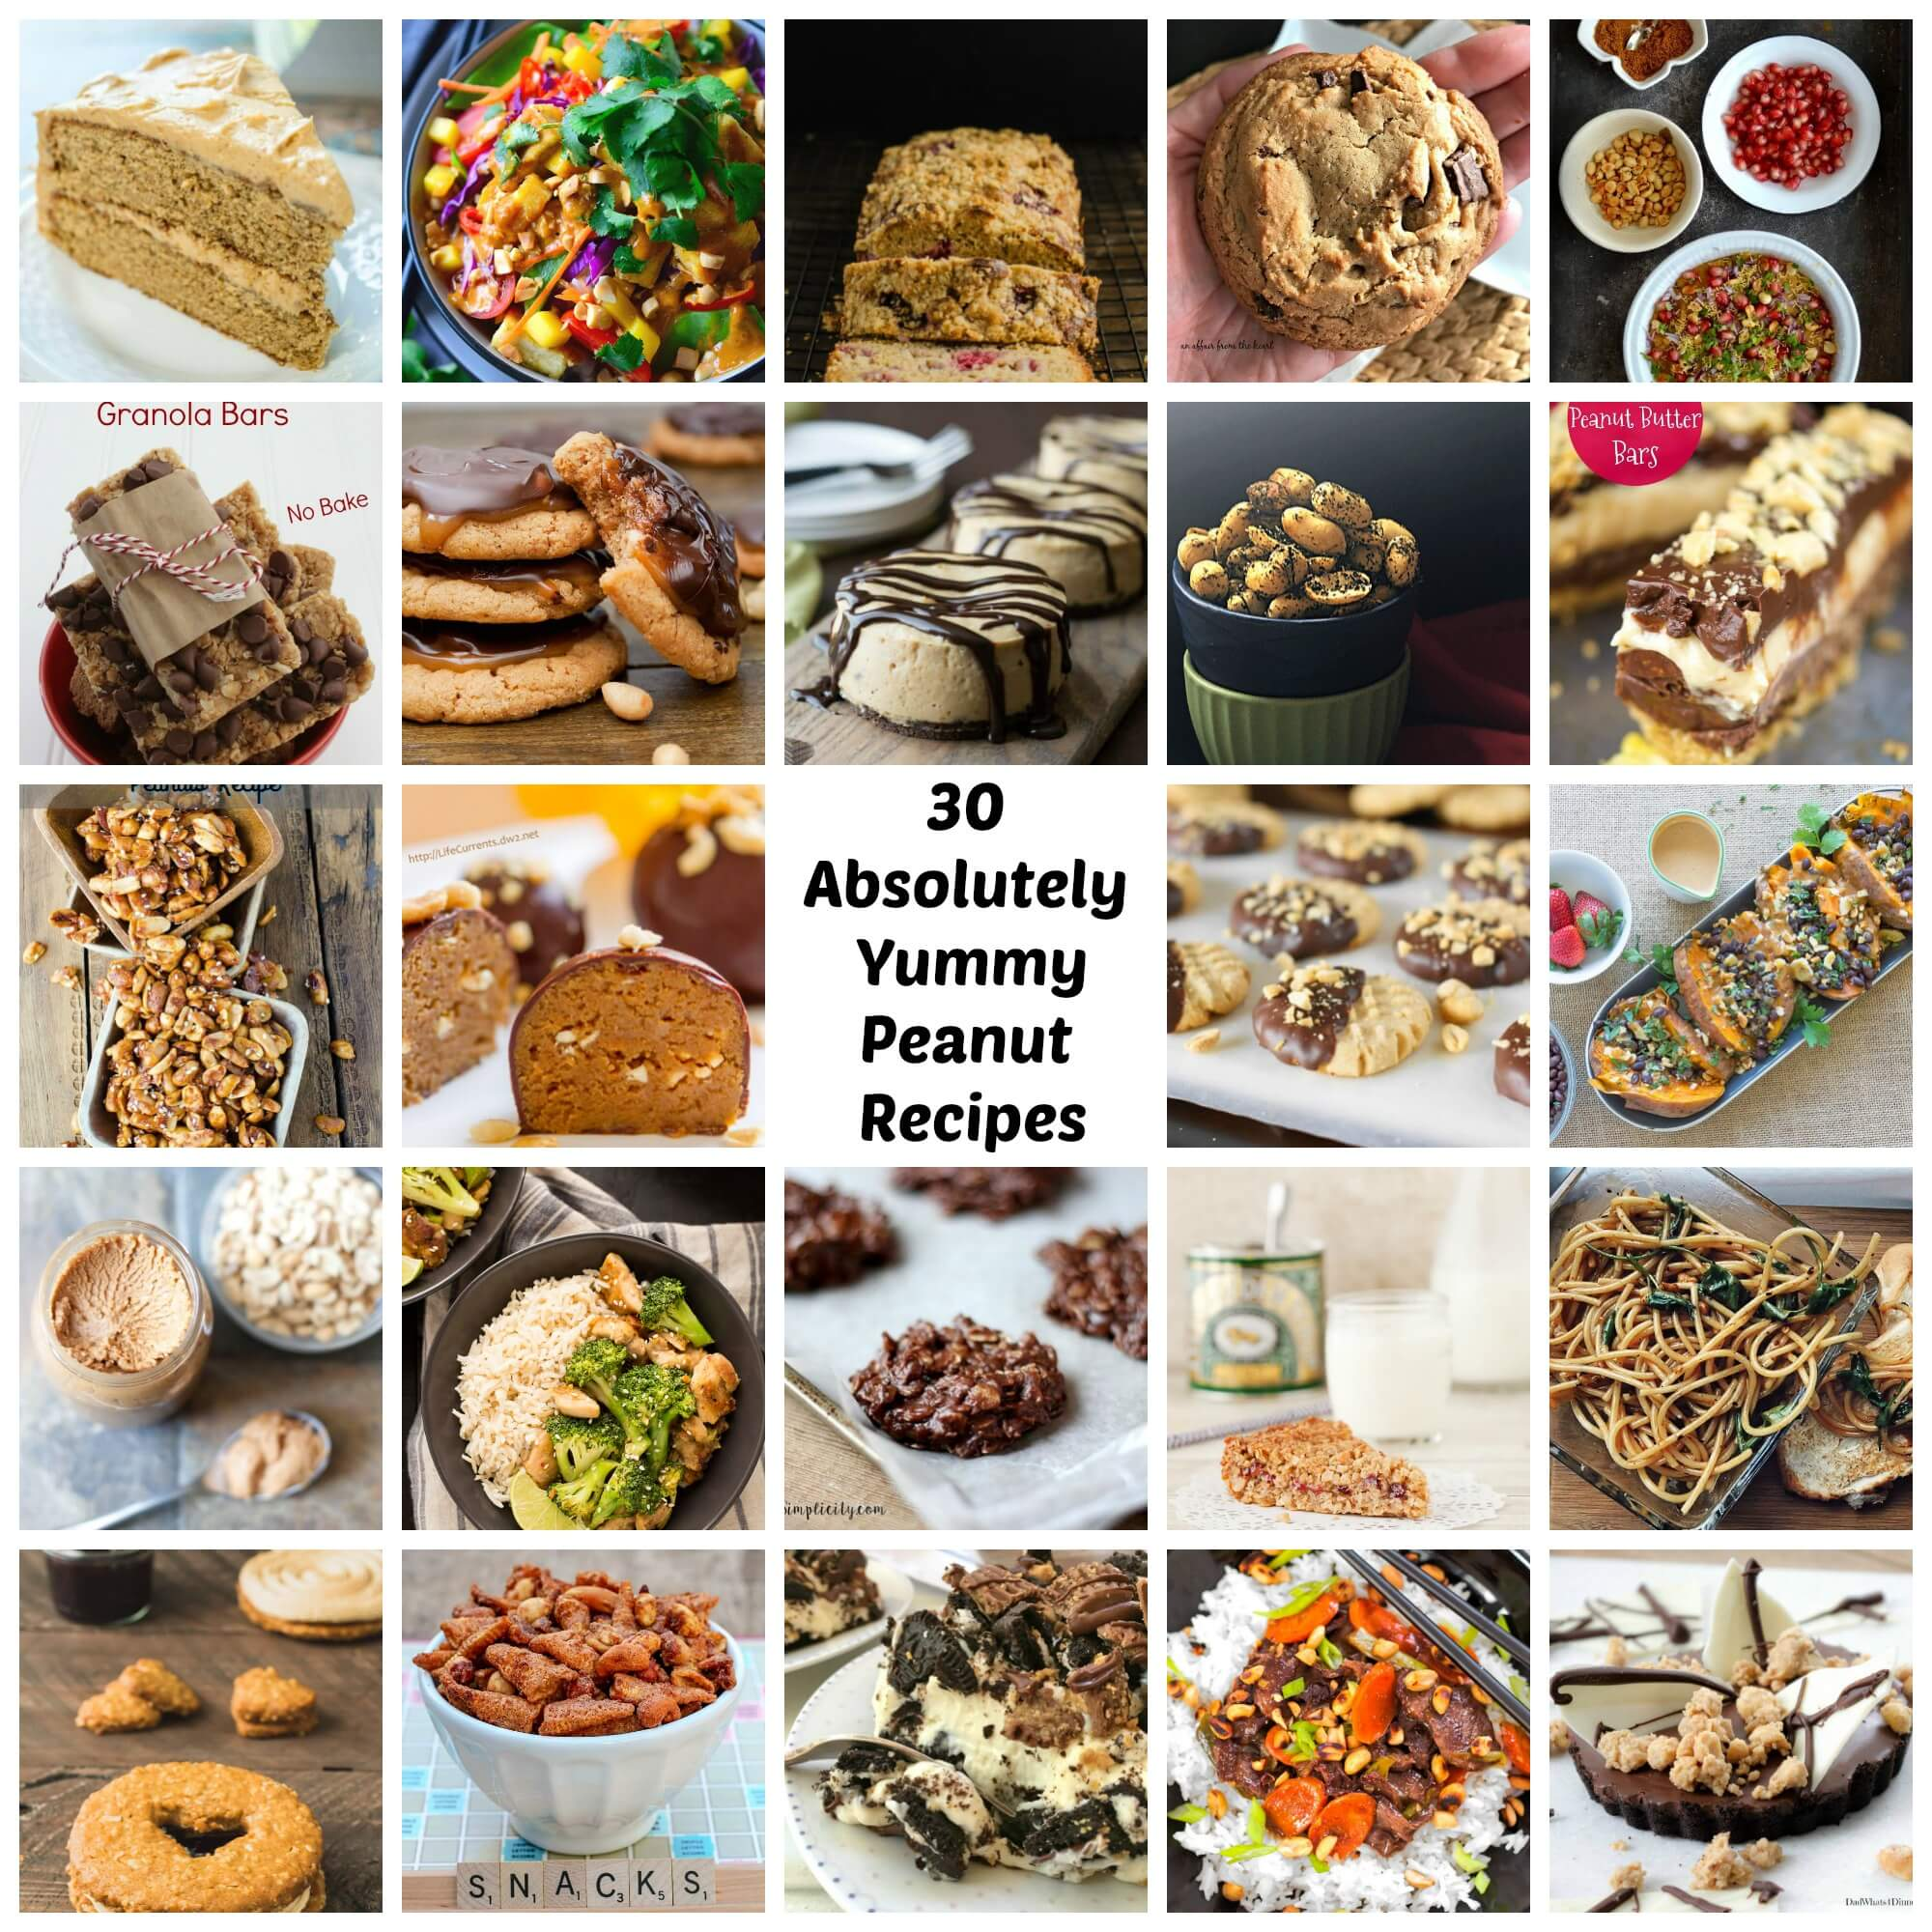 March is National Peanut Month!  Some of the most talented food bloggers have compiled an amazing 30 absolutely Yummy Peanut Recipes.